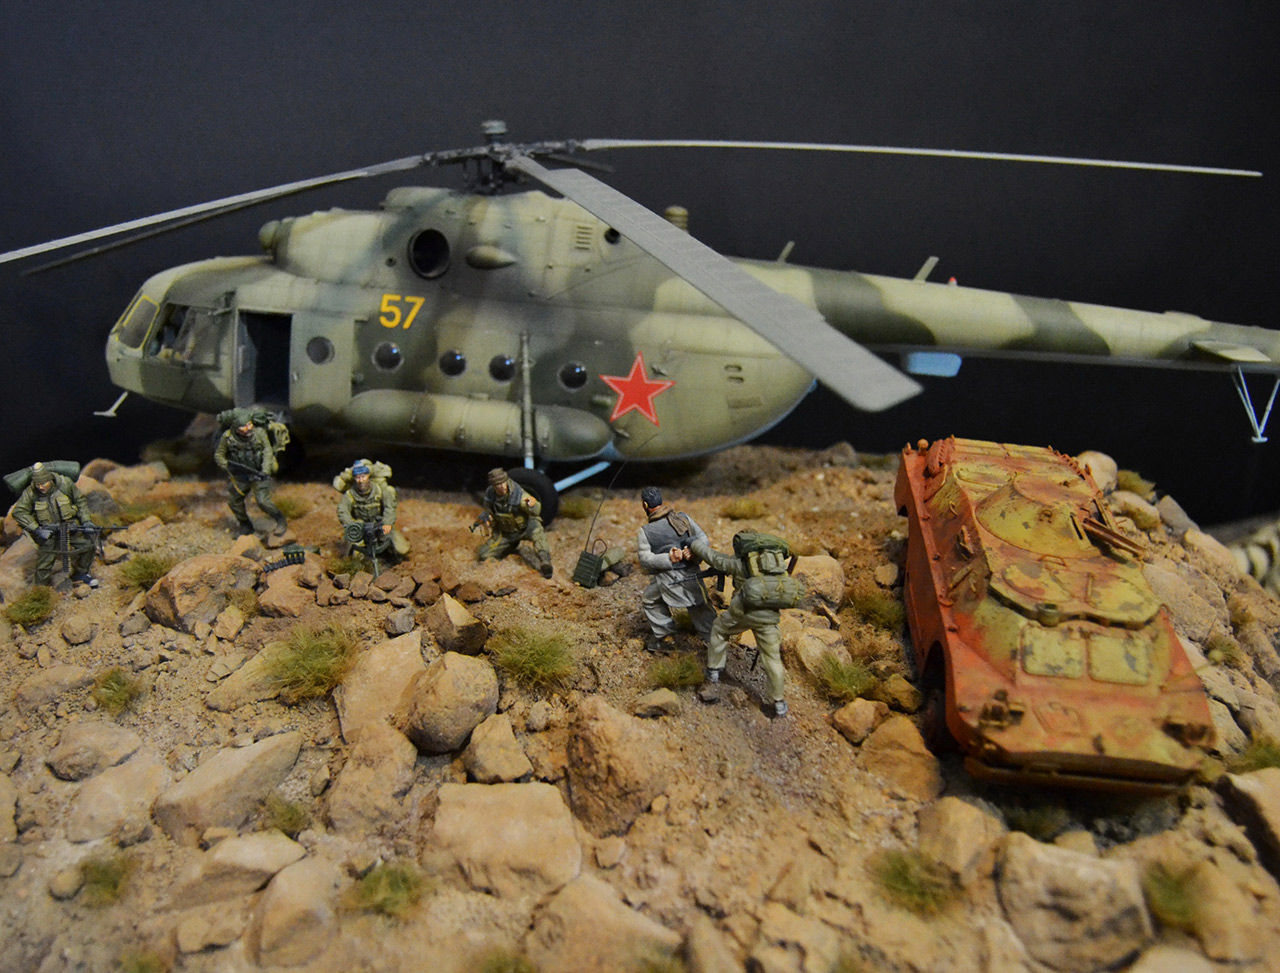 Dioramas and Vignettes: GRU special forces in Afghanistan, photo #4